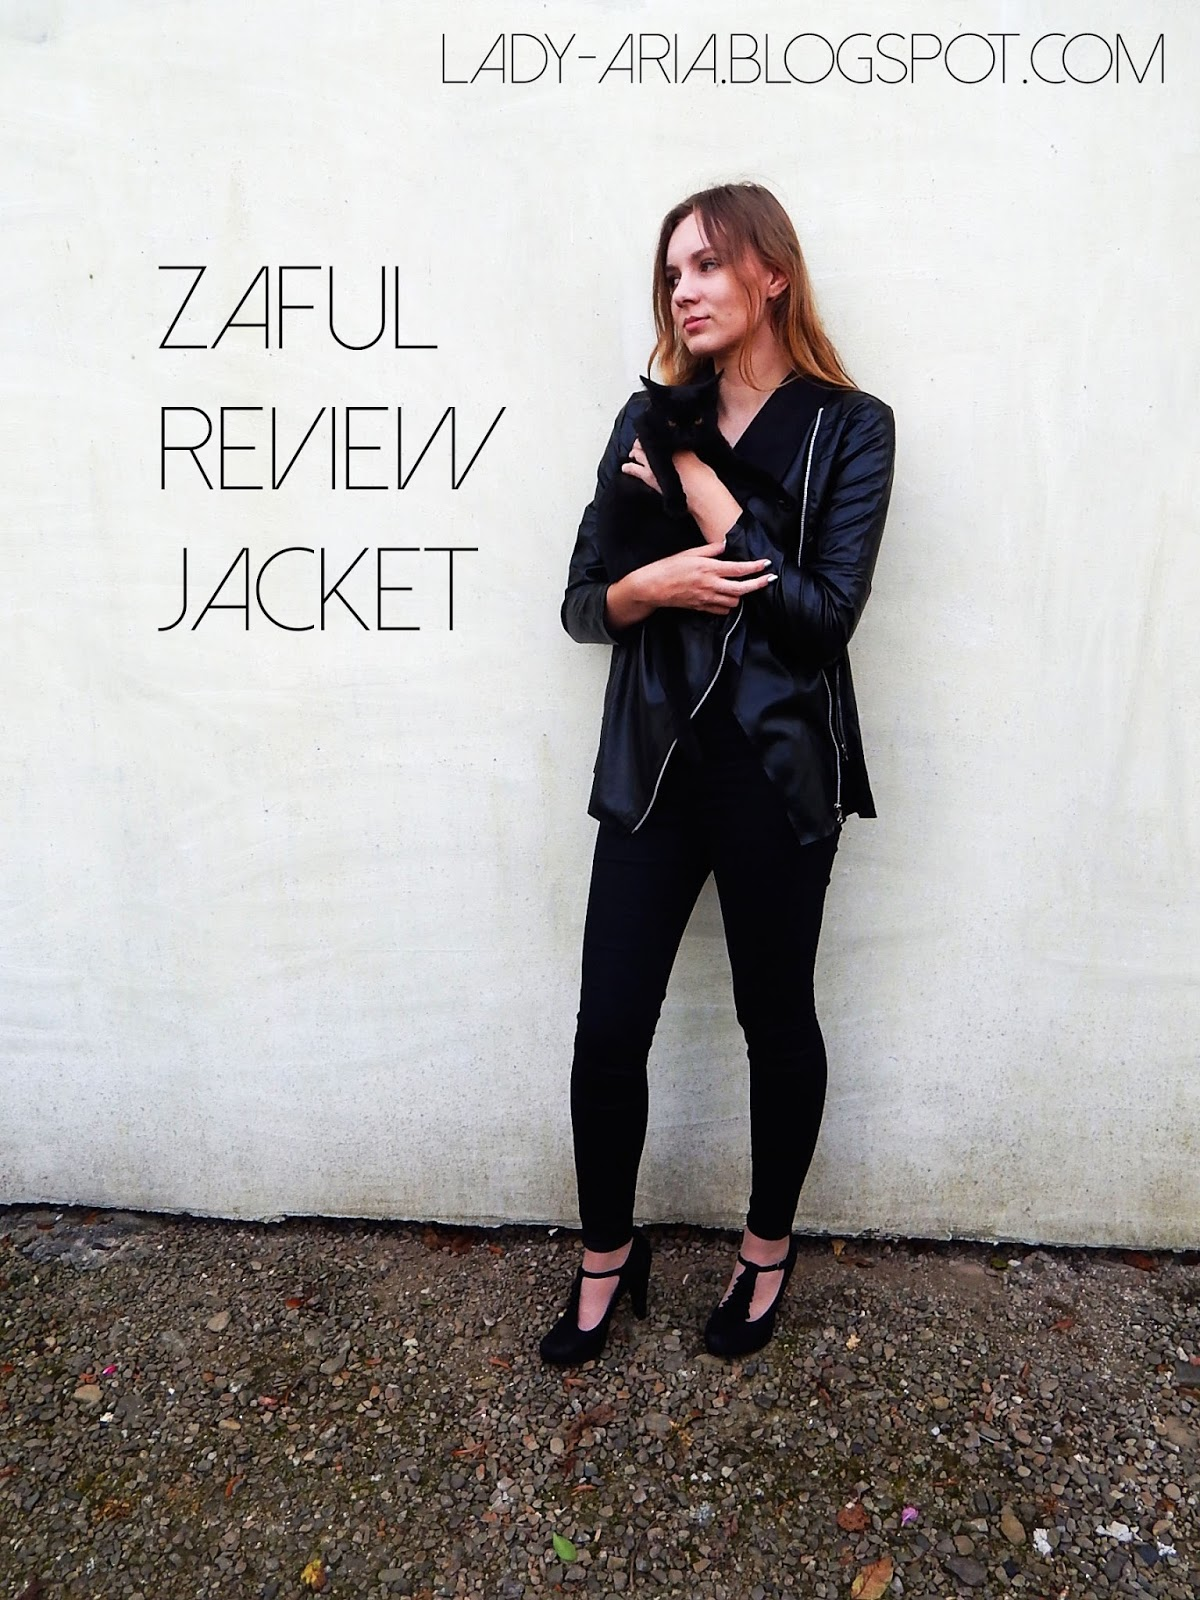 ZAFUL review - jacket